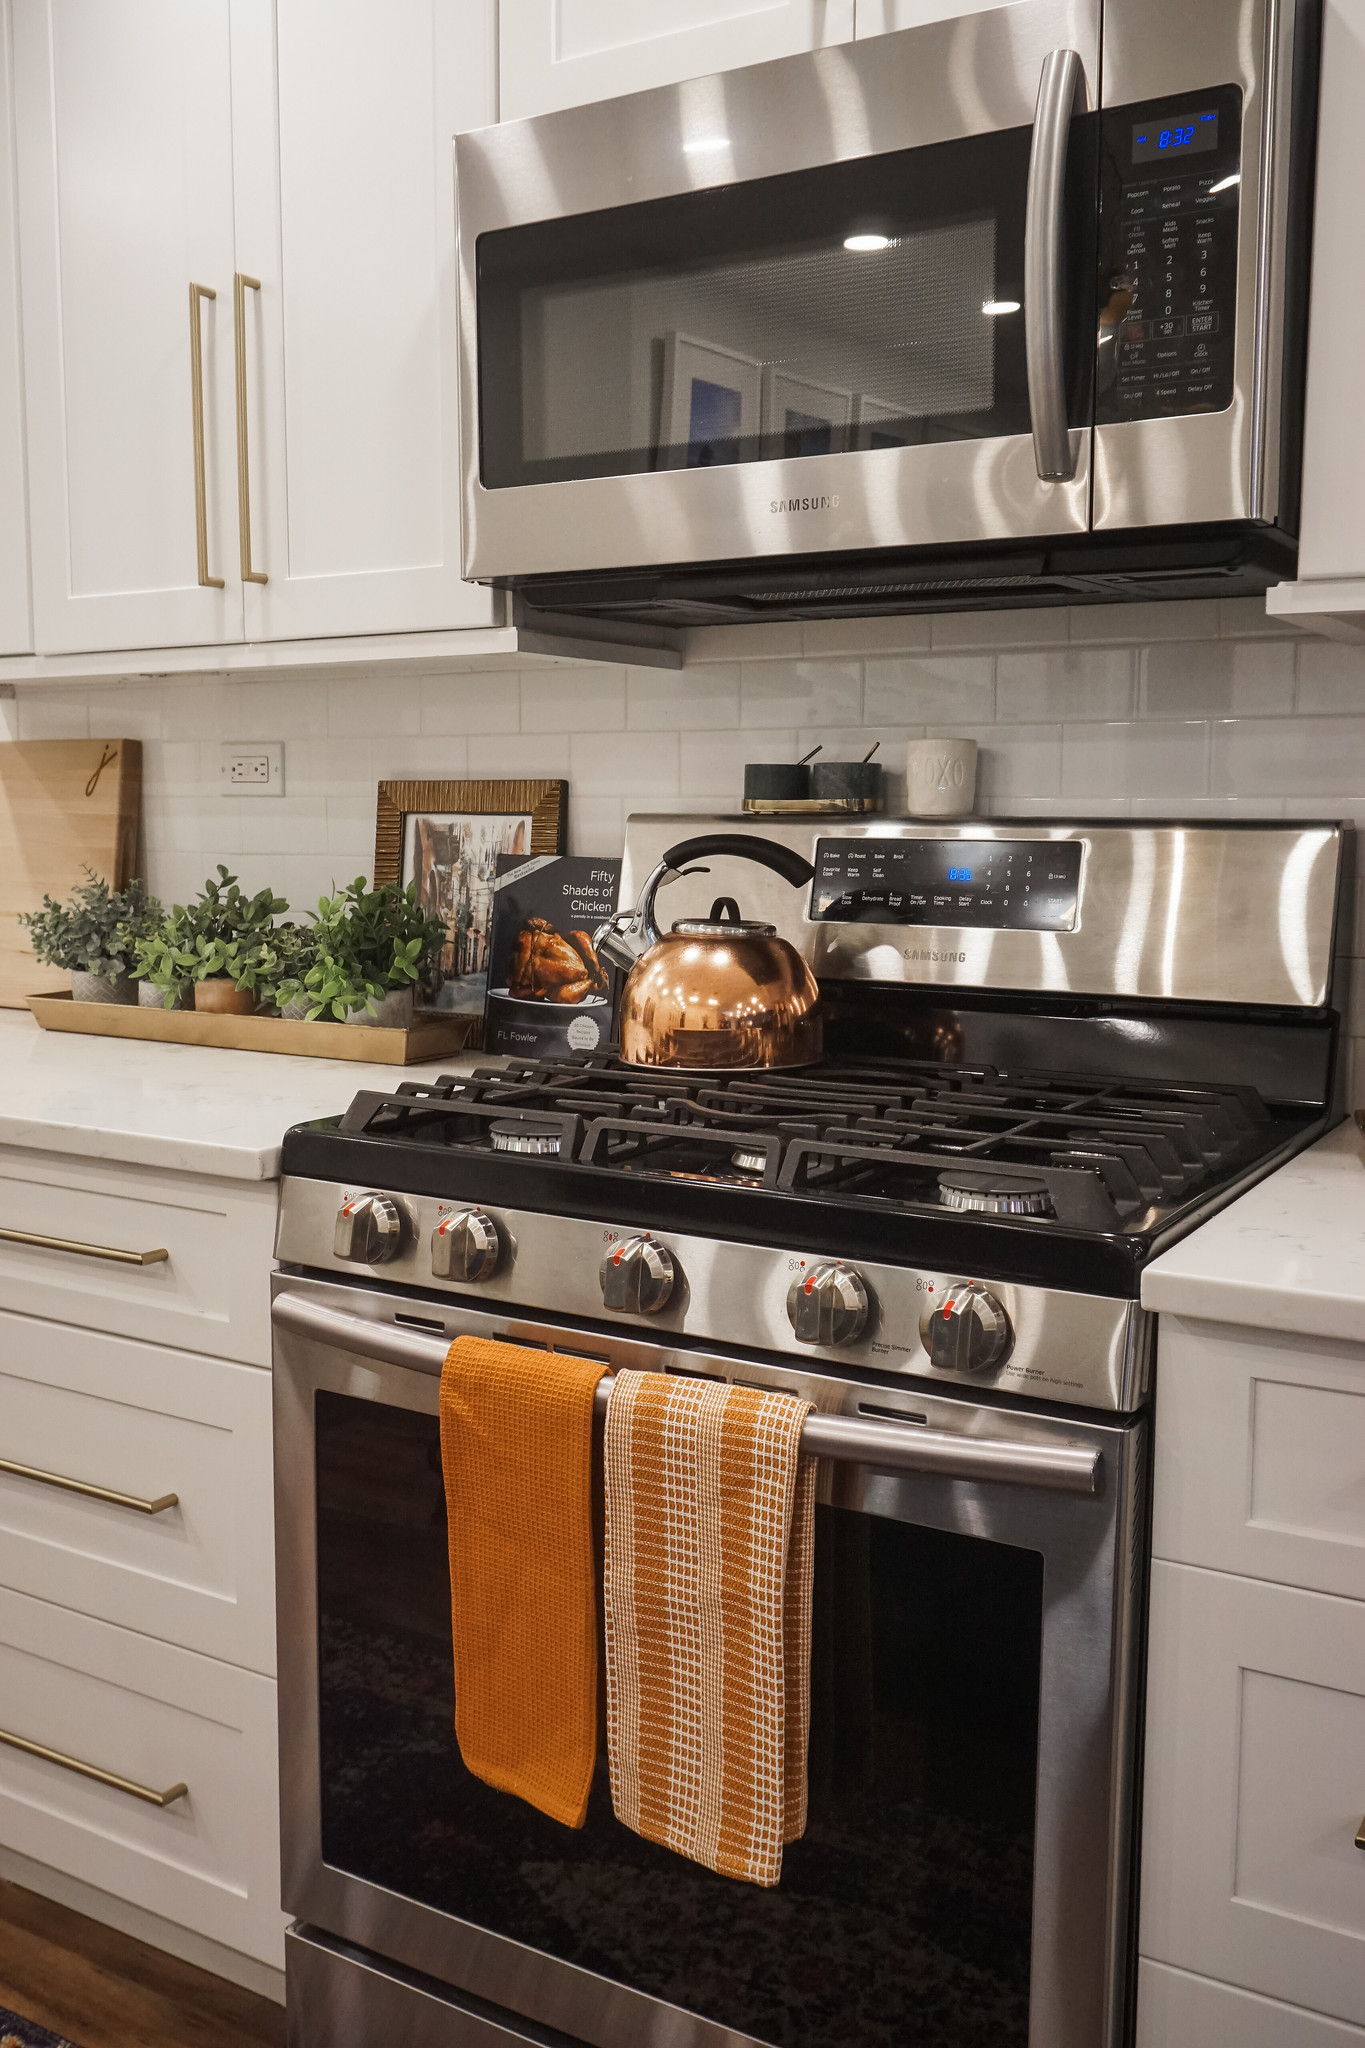 Burnt Orange Kitchen Hand Towels | Stainless Steel Stove | White Shaker Cabinets